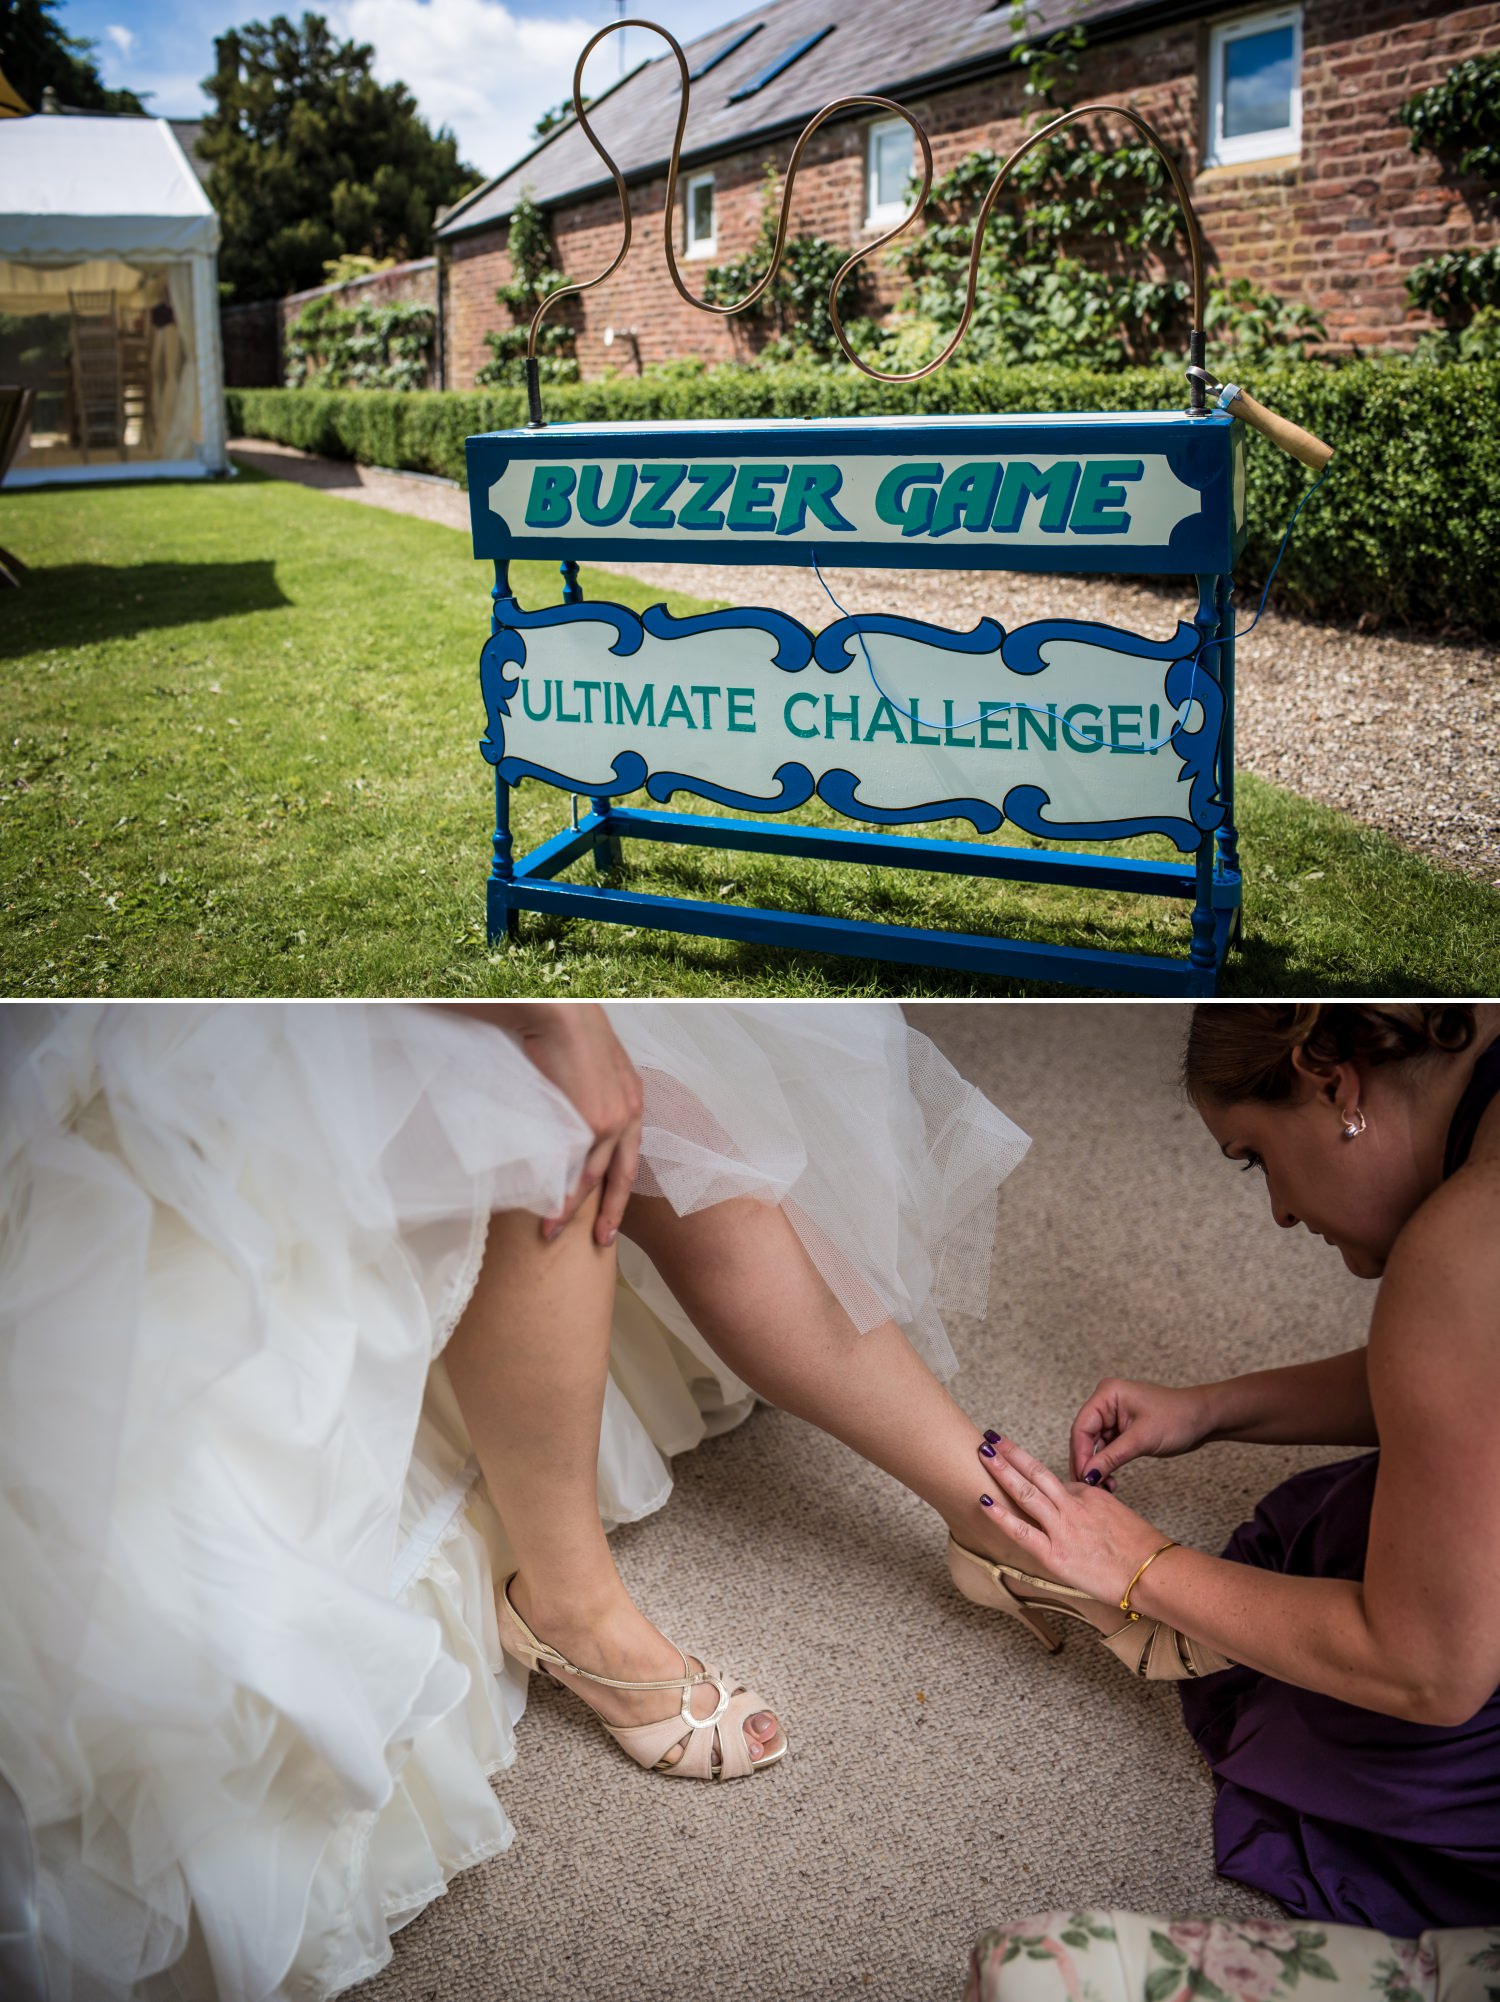 Wedding photographer at Pentrehobyn Hall puzzle games